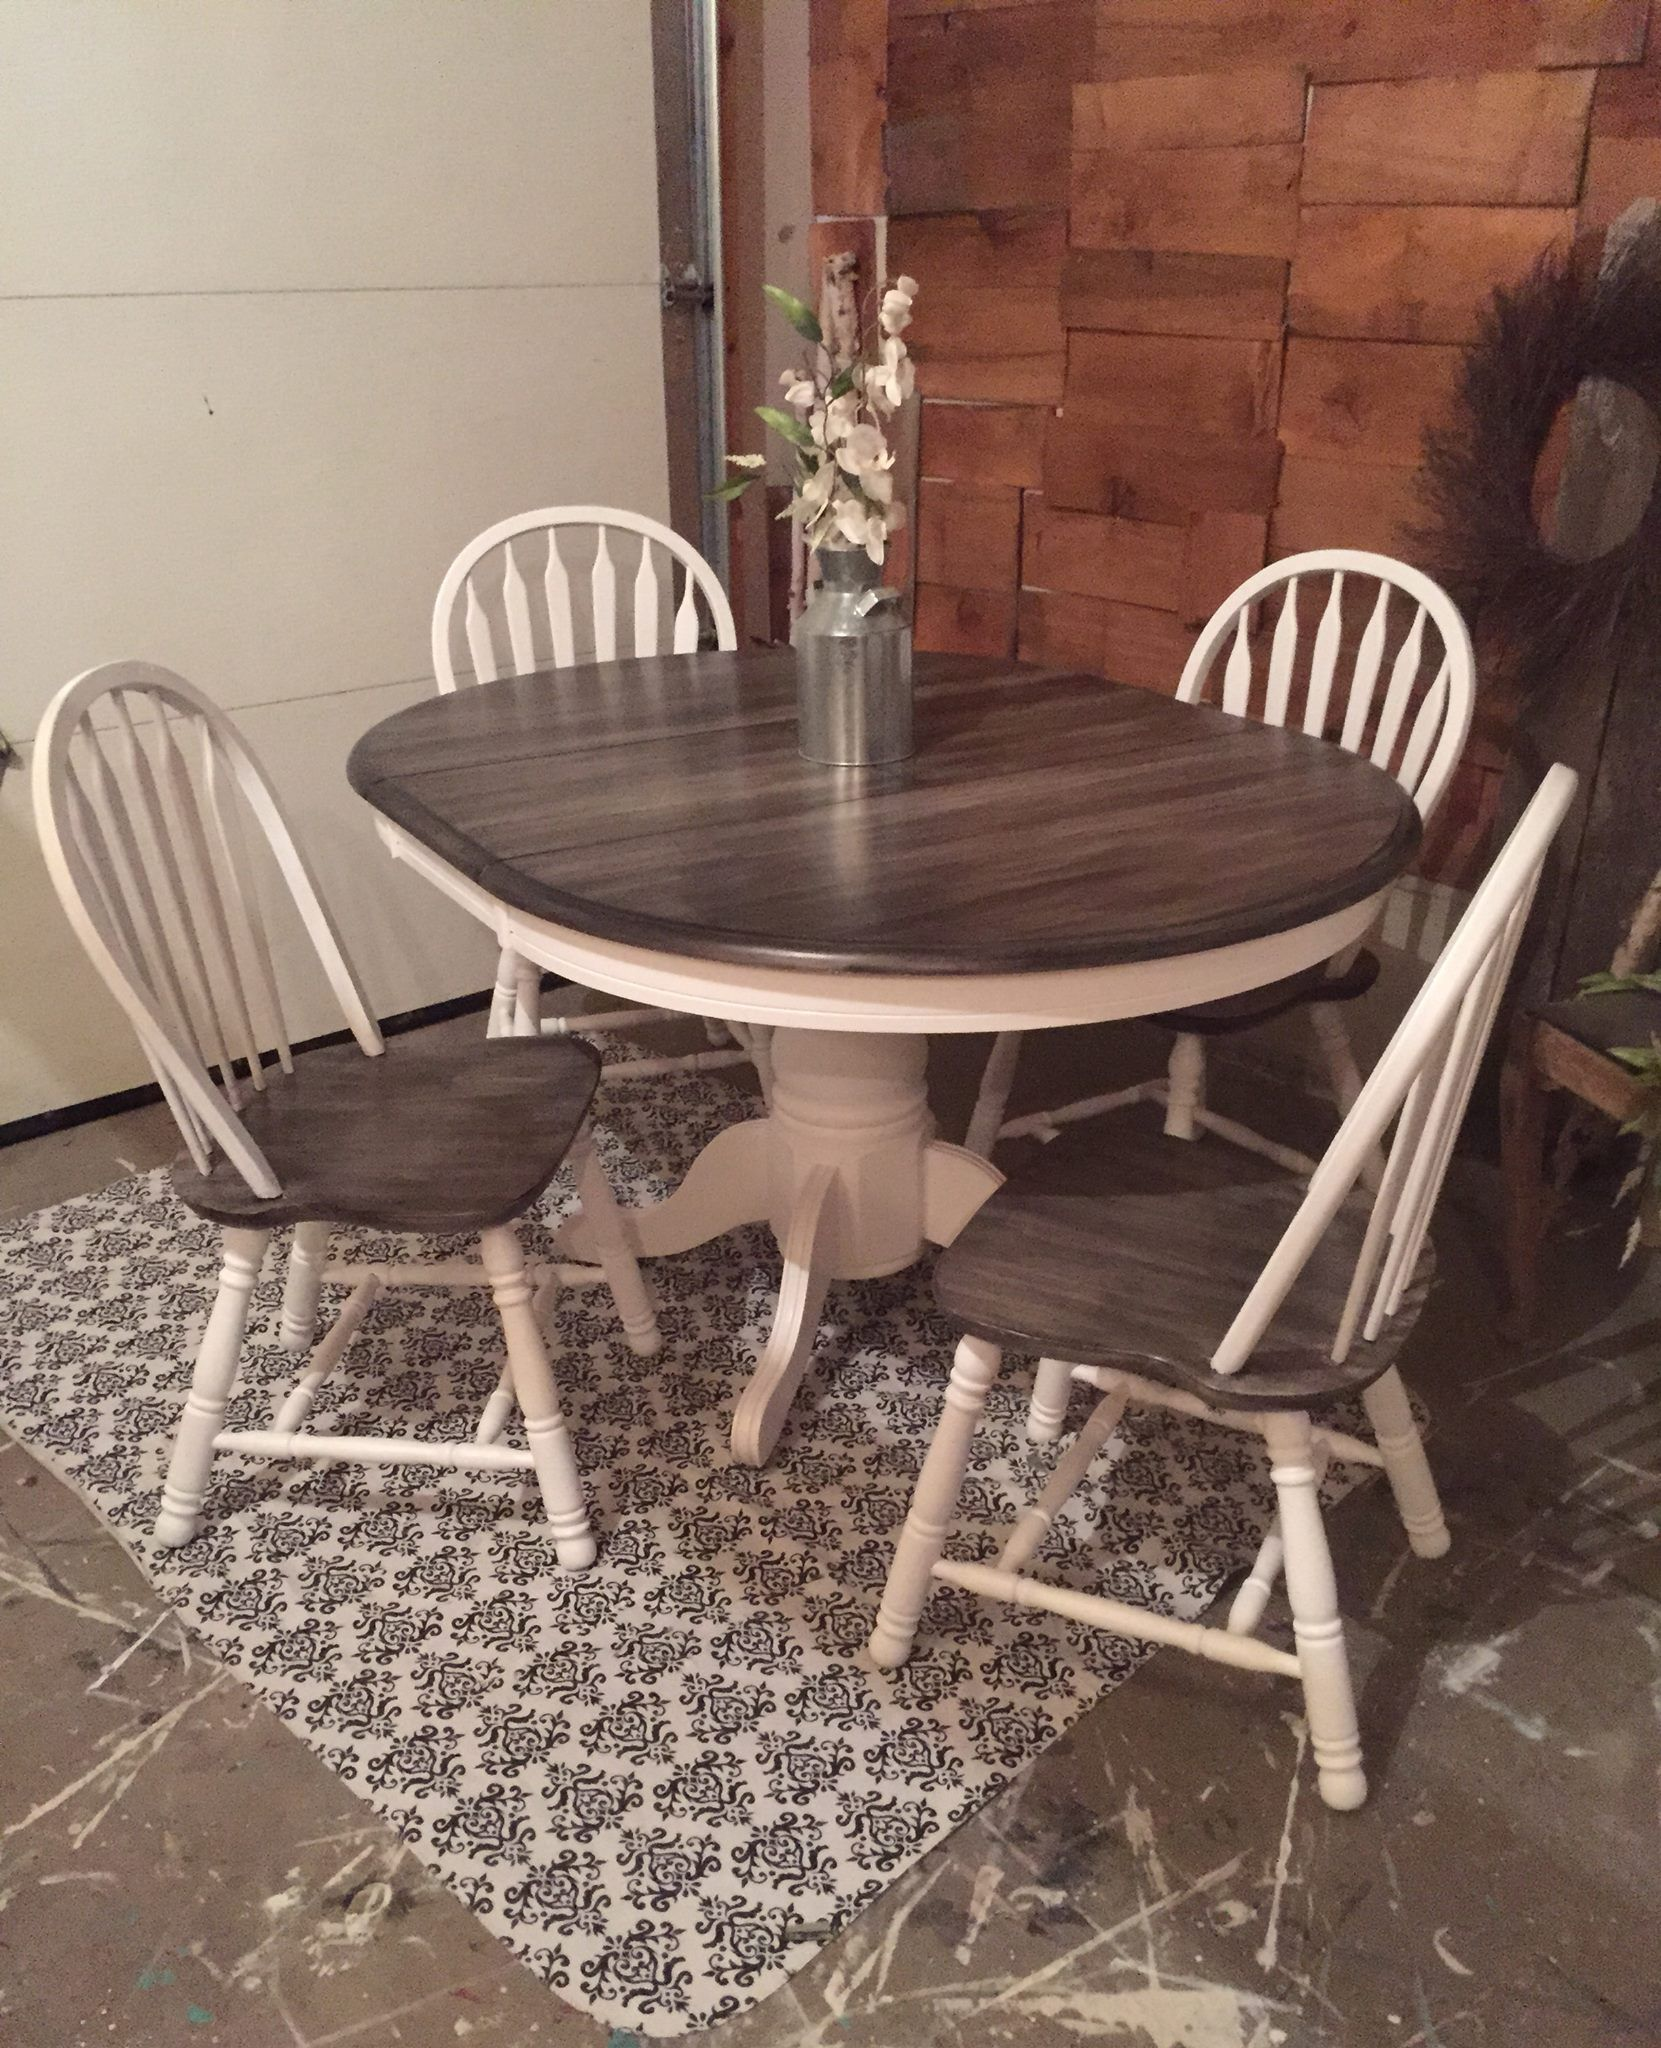 From simple Oak Table and Chairs to a Decorative Rustic ...